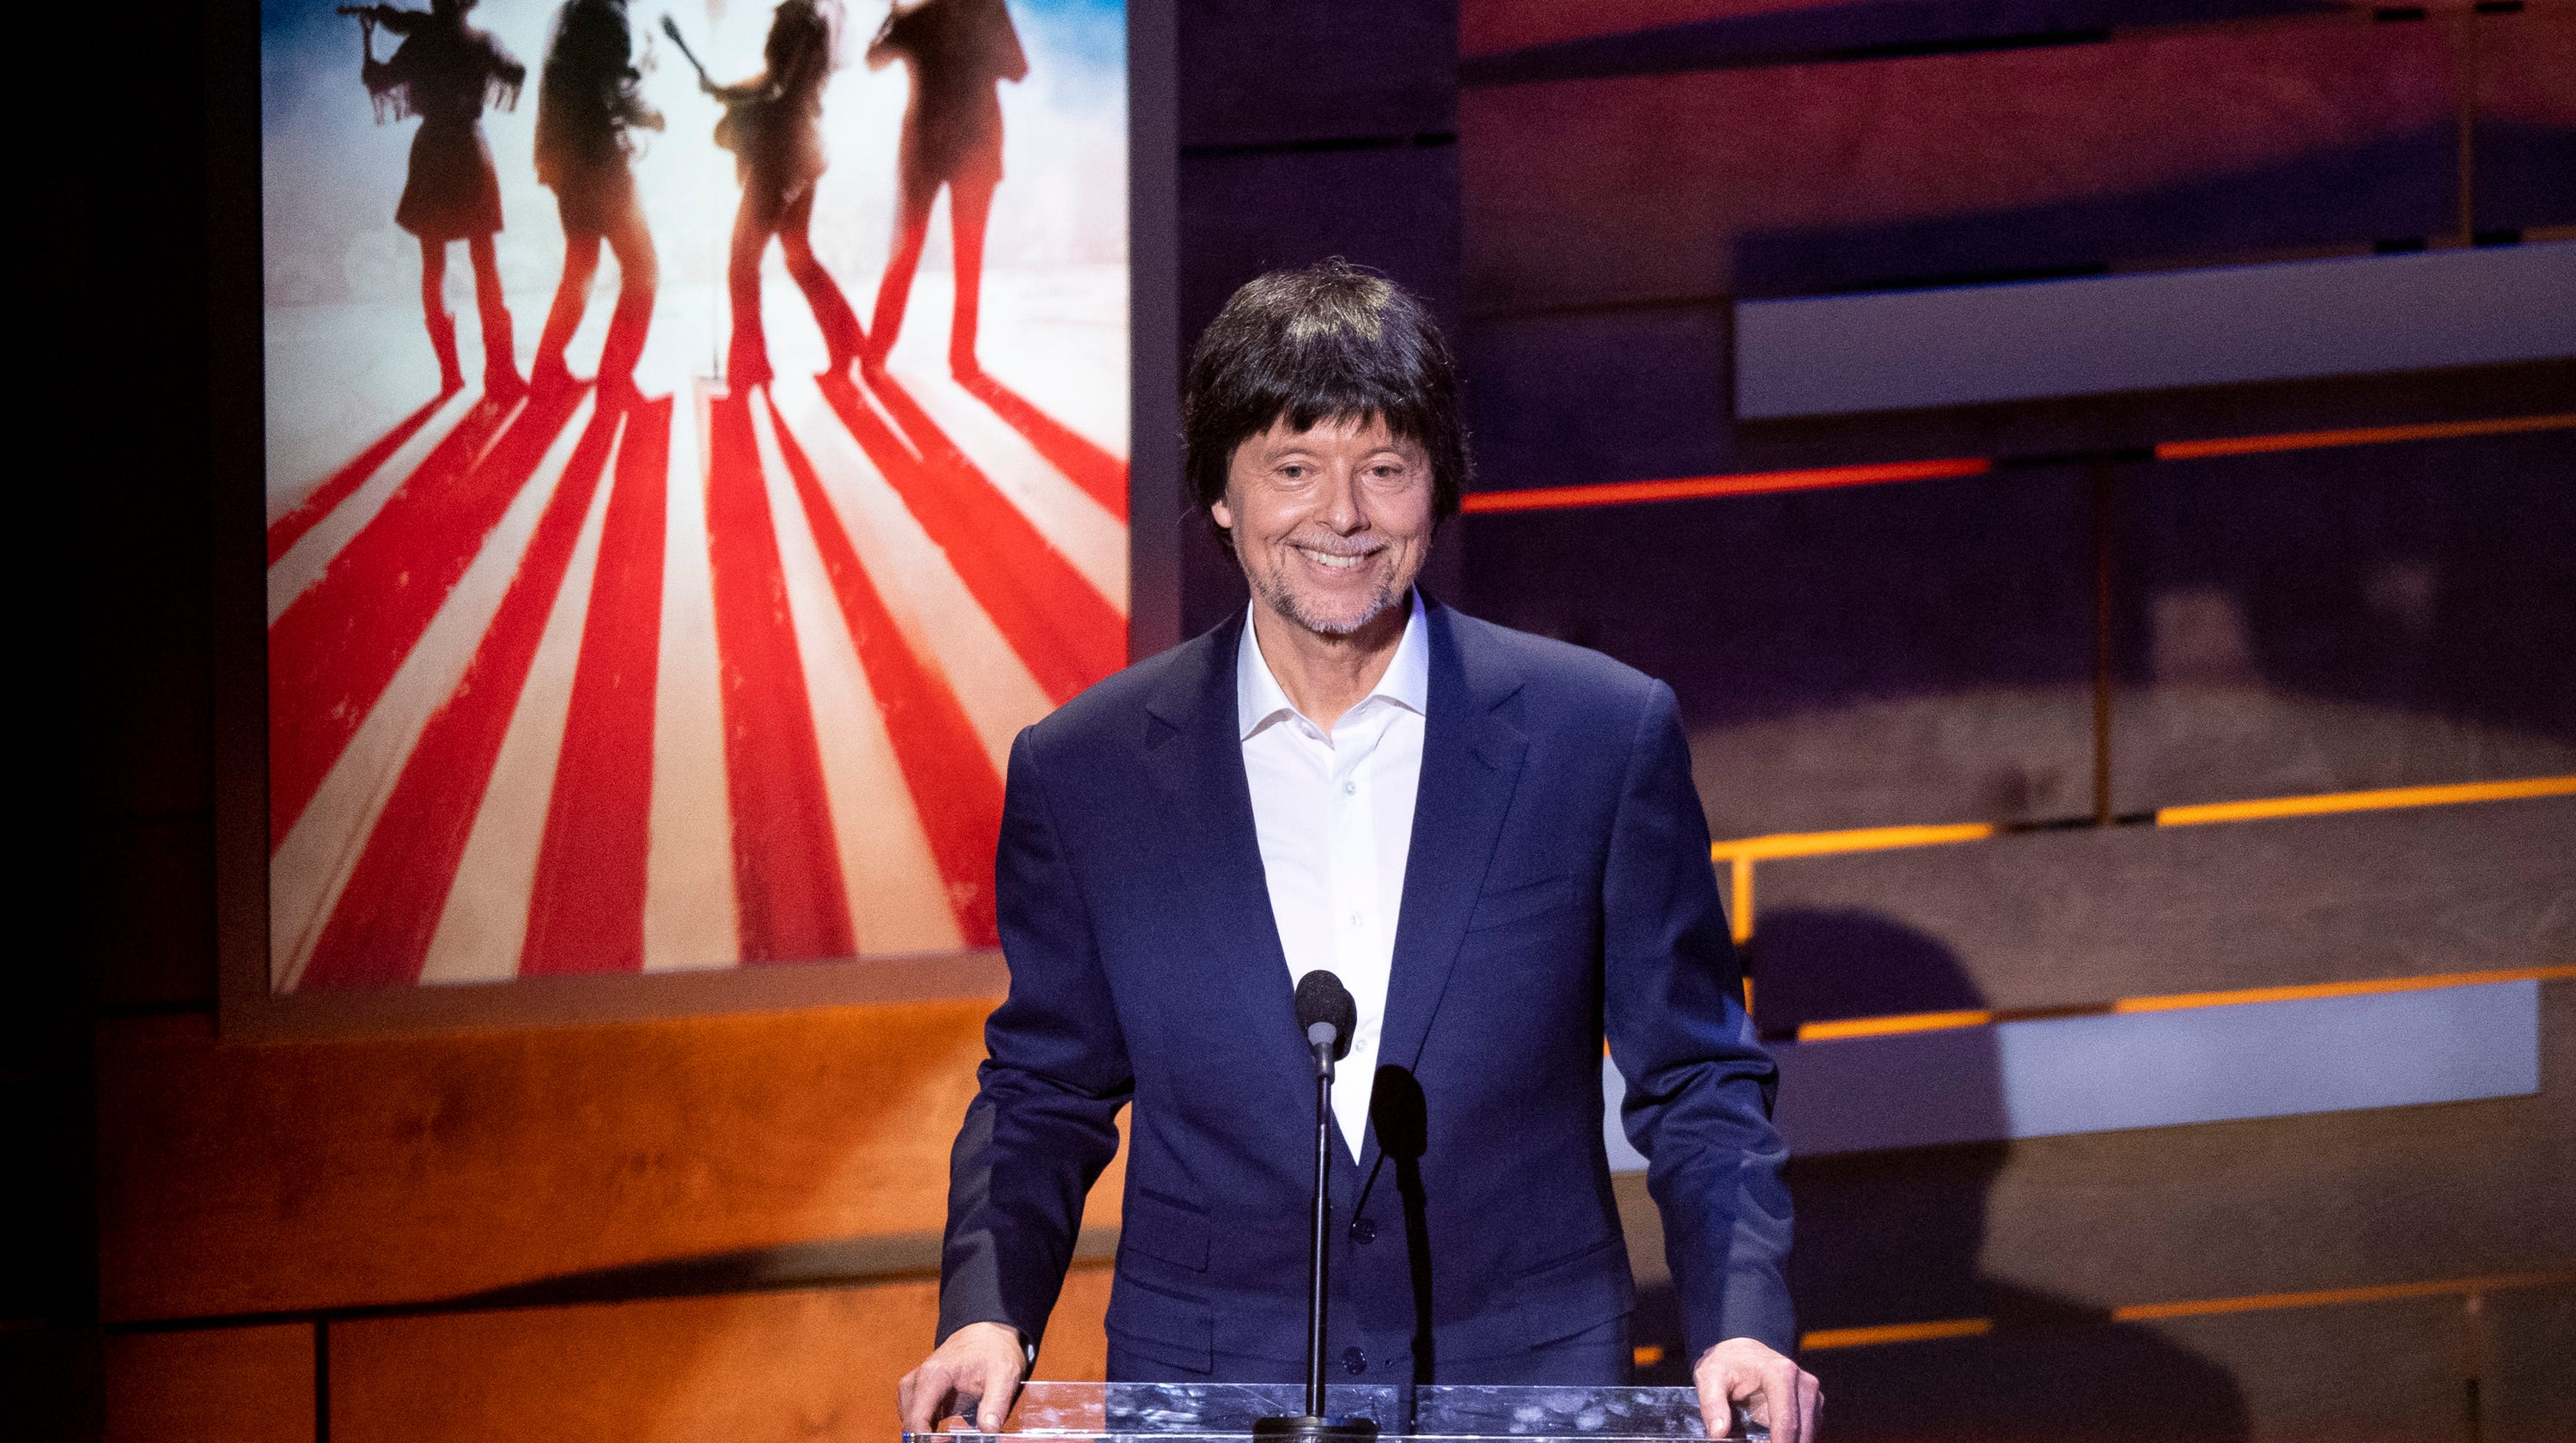 How To Watch Stream Ken Burns Country Music Documentary